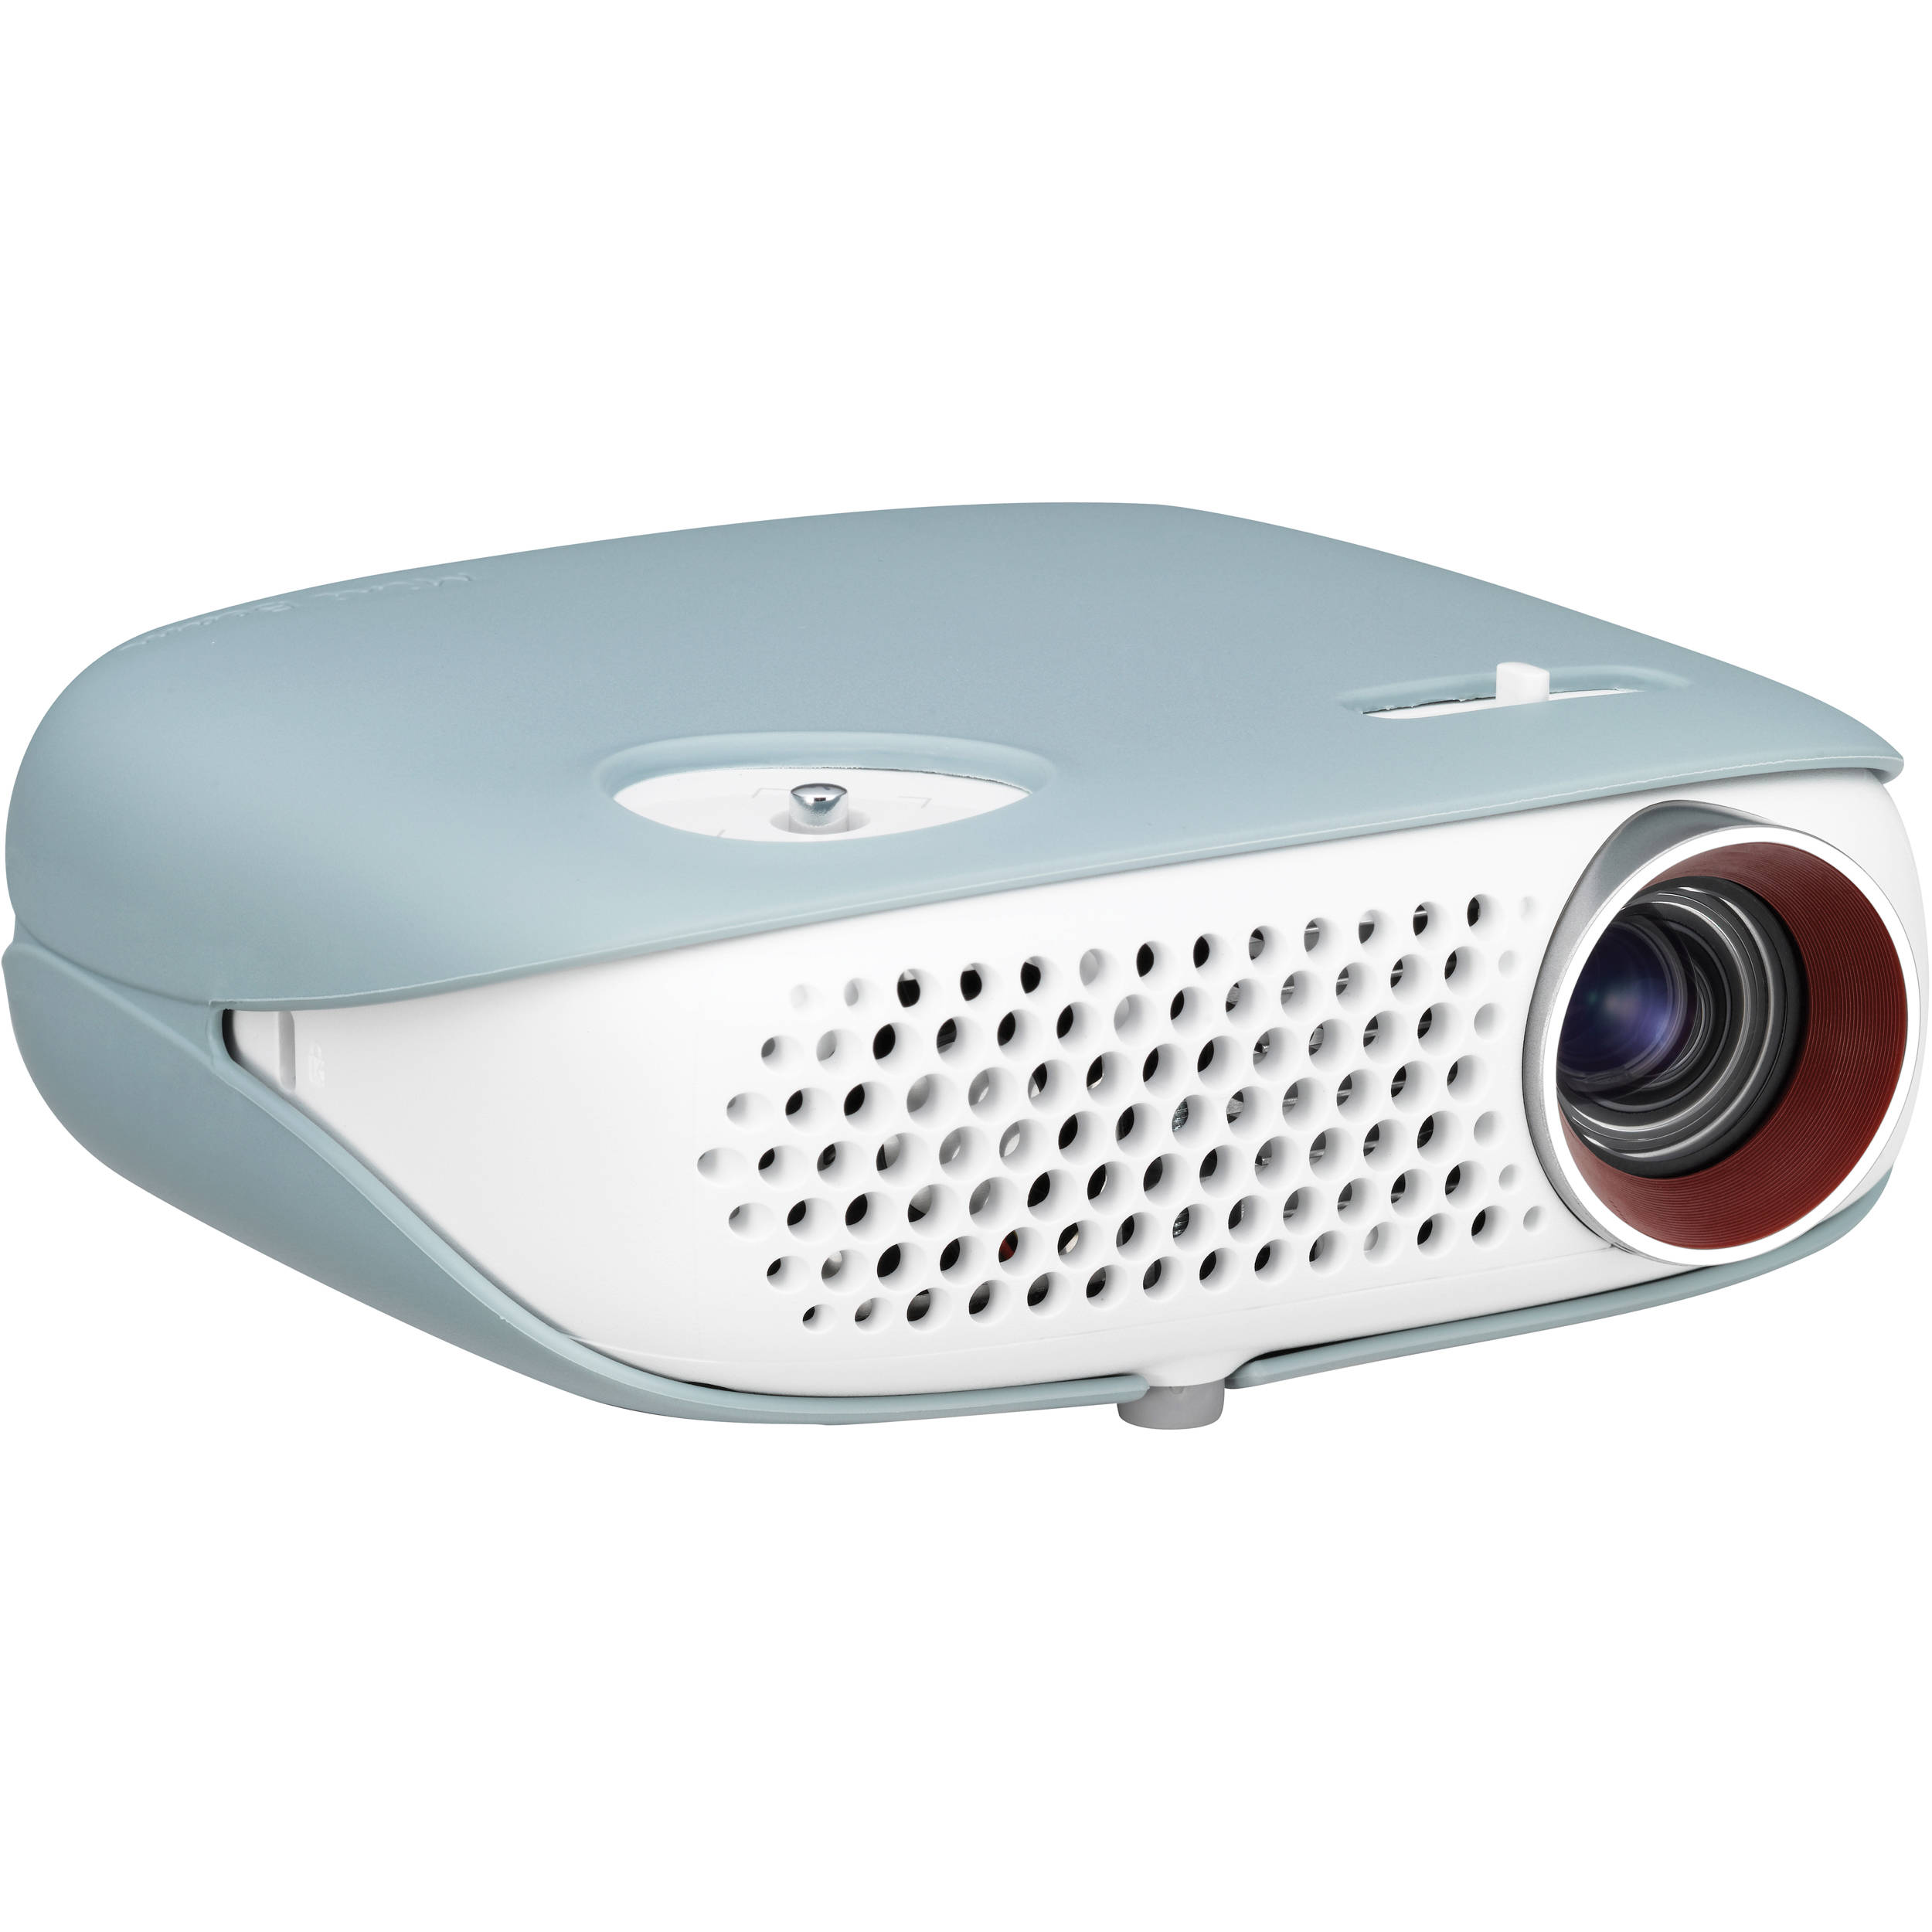 Lg pw800 portable hd led projector pw800 b h photo video for Portable video projector